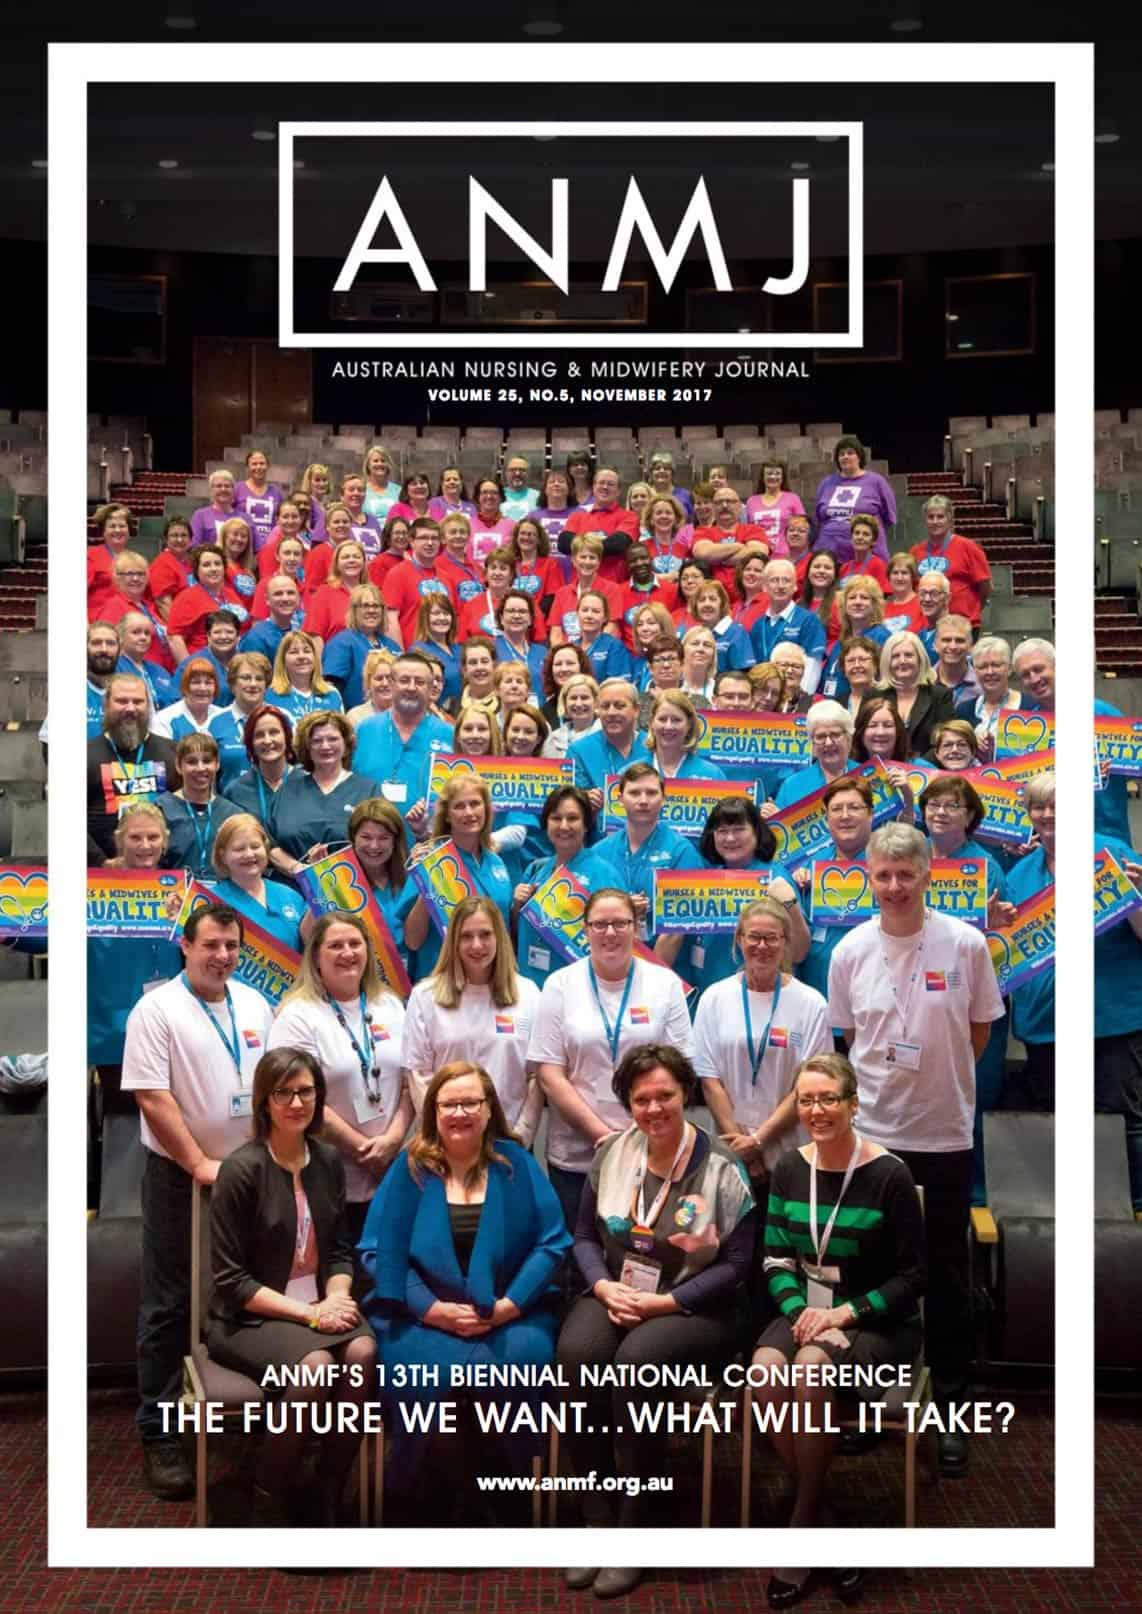 ANMJ Oct-Dec 2019 Issue